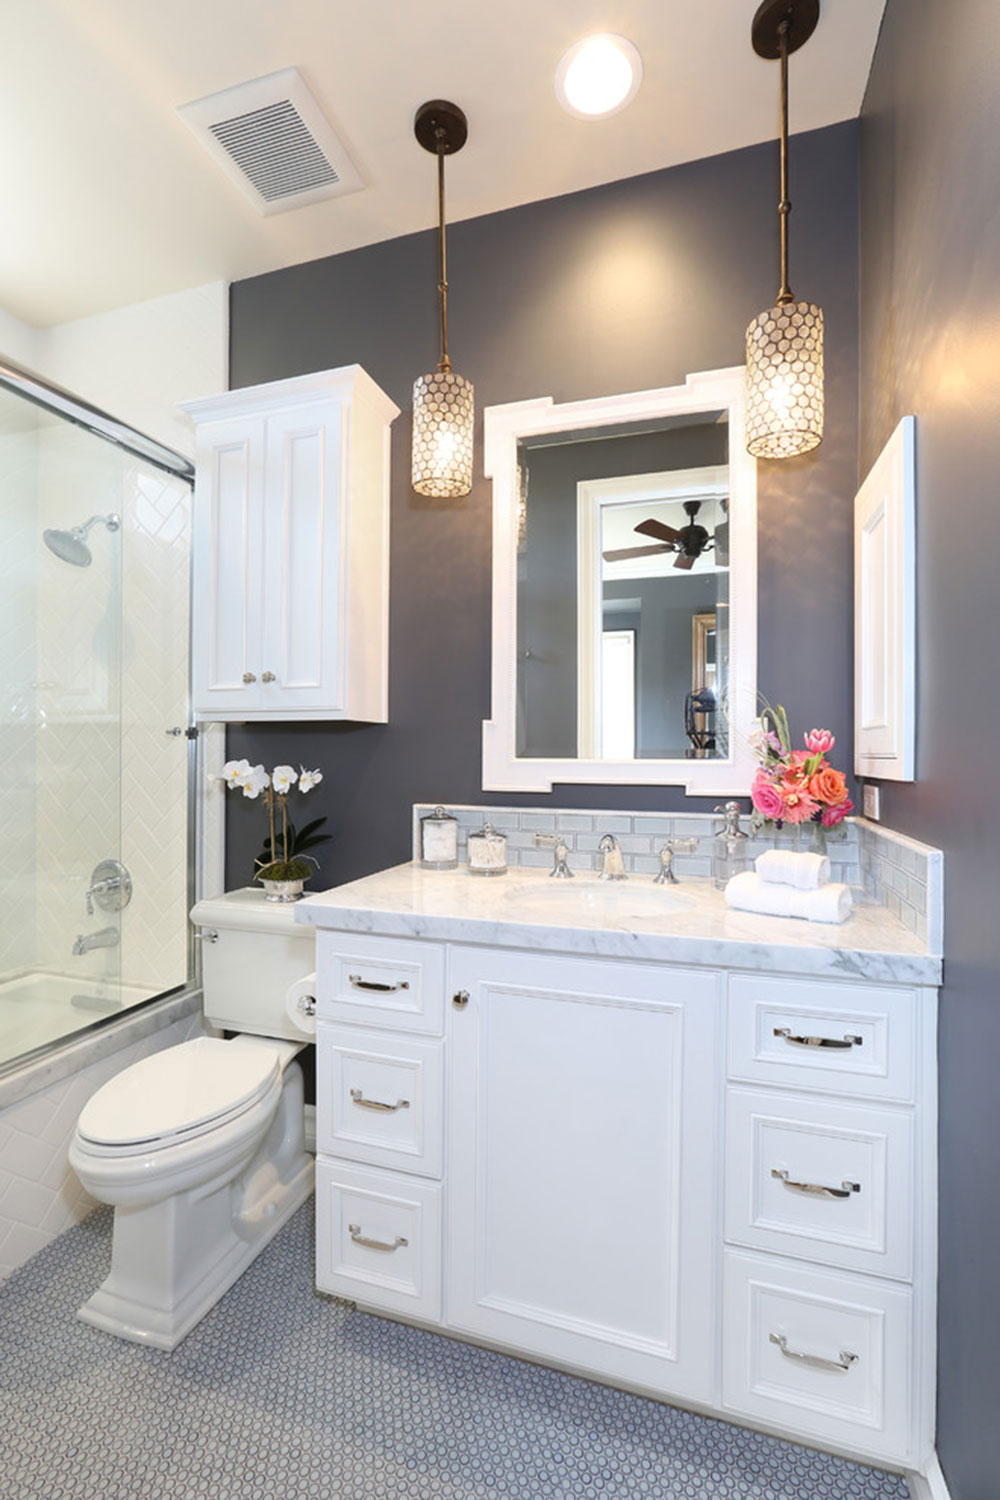 How To Make A Small Bathroom Look Bigger8 How